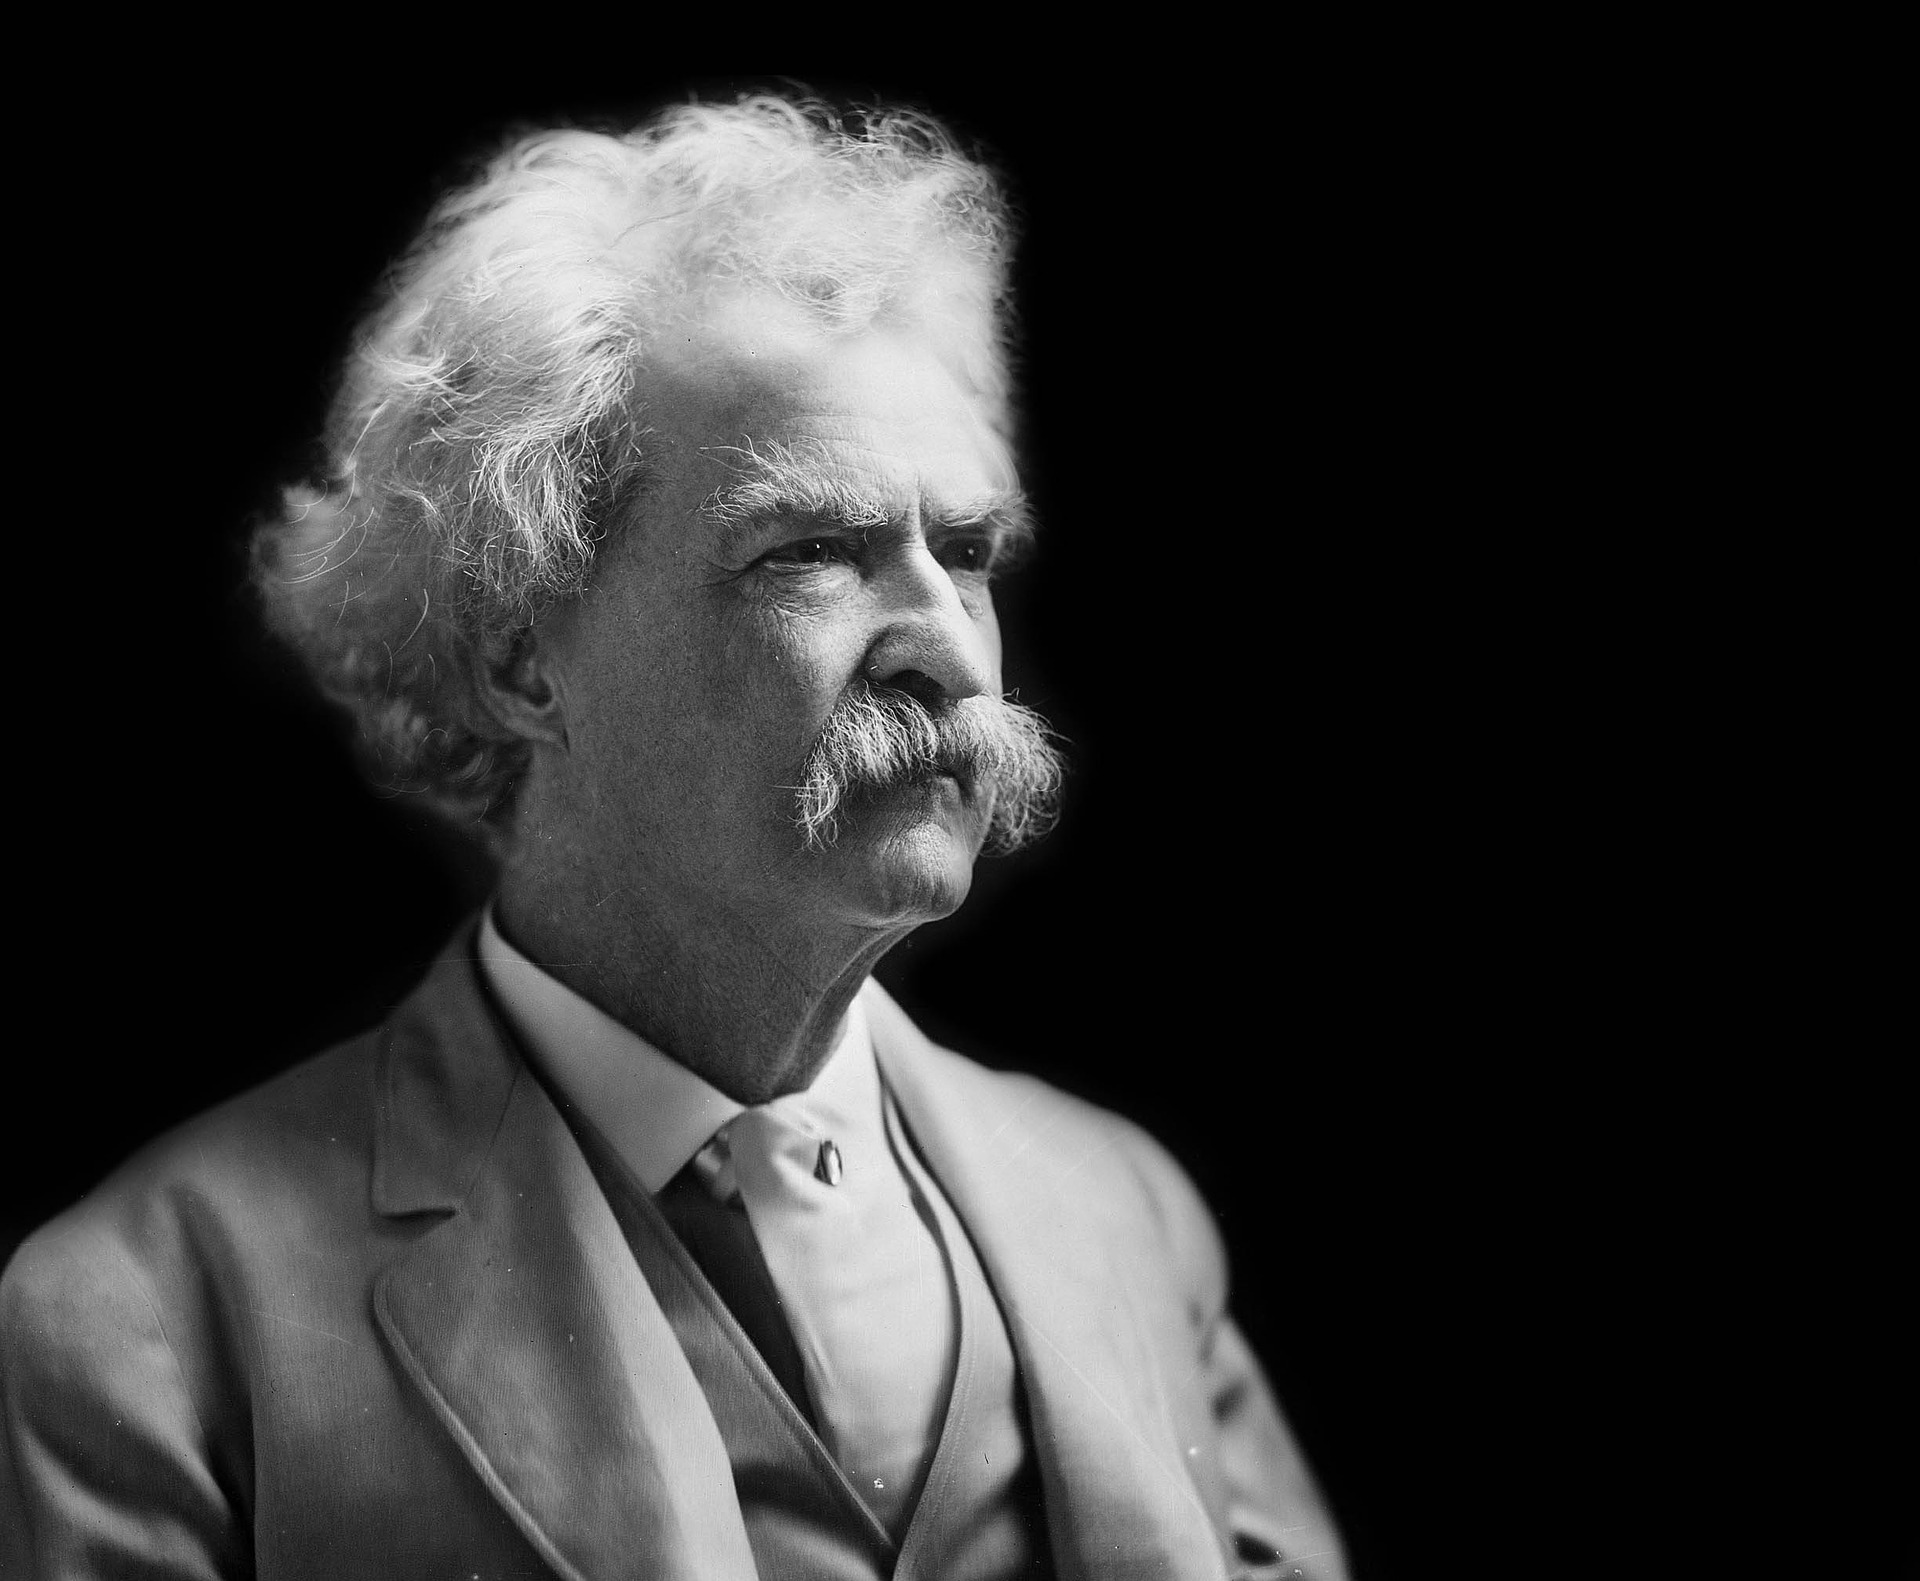 an analysis of the humor regionalism and dialect of mark twain Everything you need to know about the writing style of mark twain's adventures of huckleberry finn  adventures of huckleberry finn / analysis / writing style.